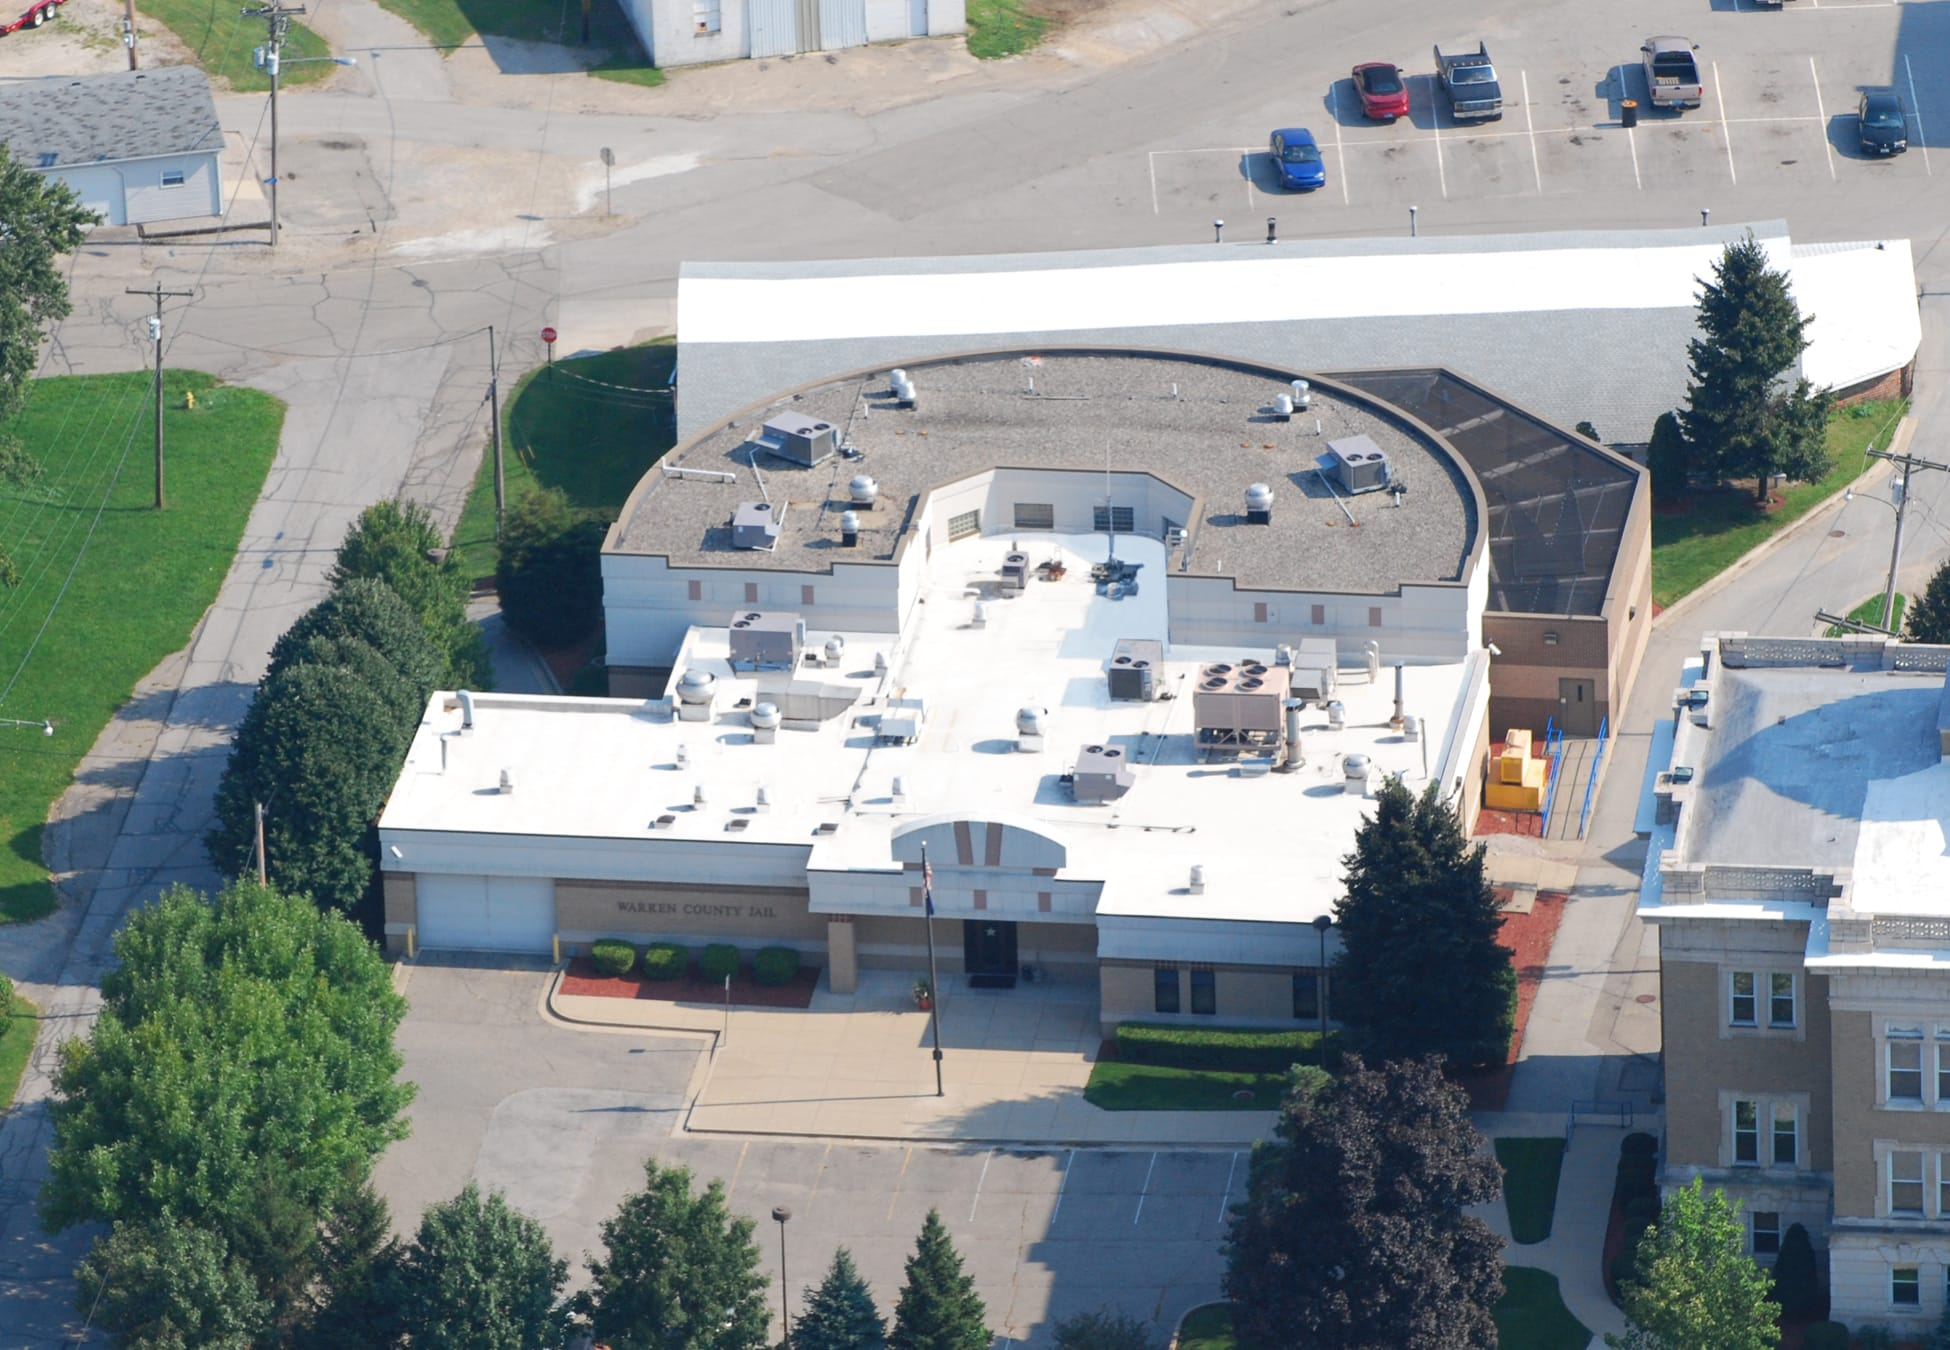 Commercial Flat Roofing in Williamsport, Indiana